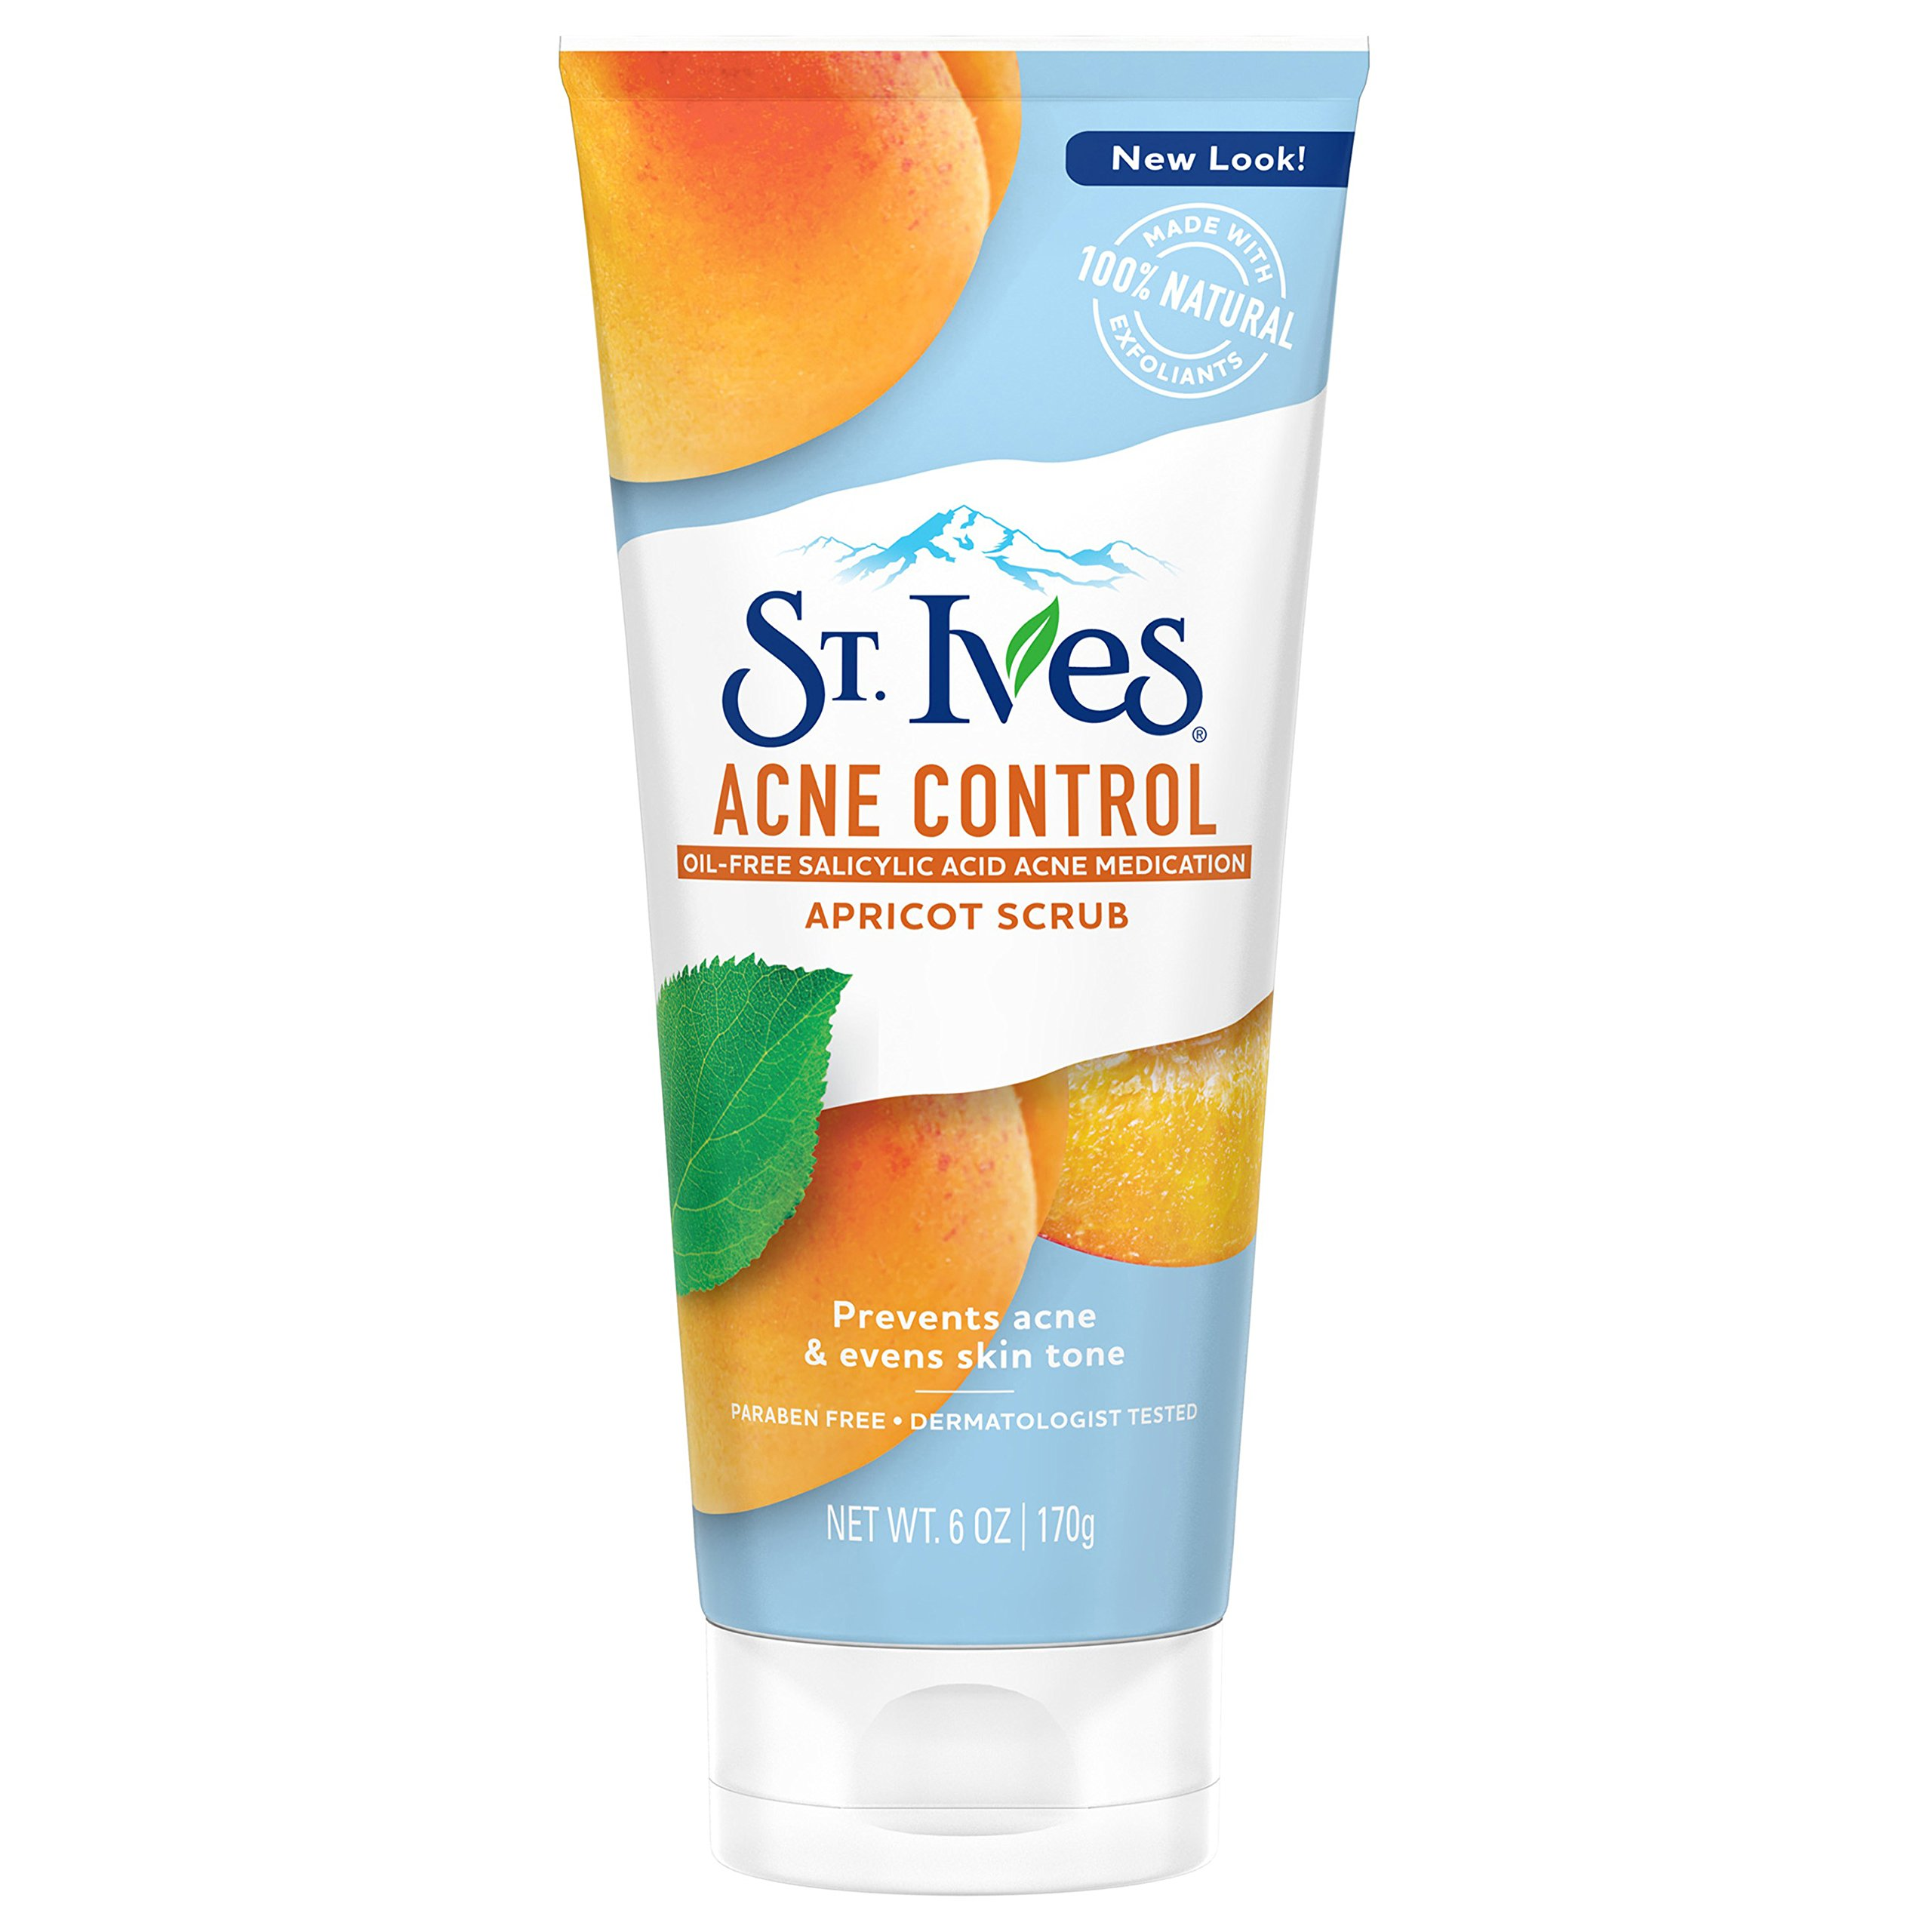 St. Ives Acne Control Face Scrub, Apricot, 6 oz (Packaging May Vary)